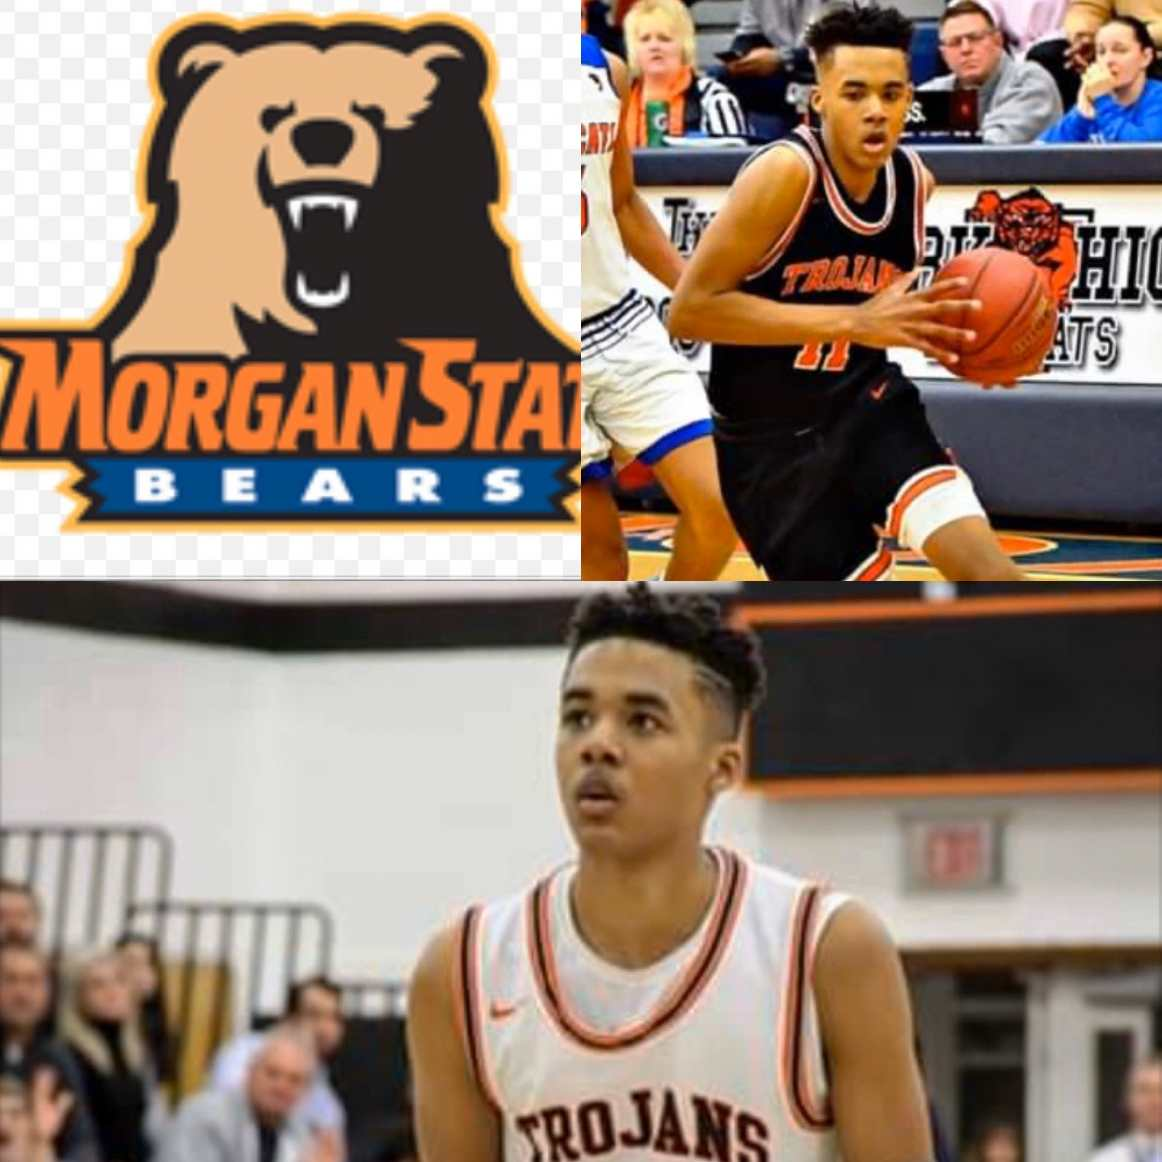 Morgan State Makes Statement with Sutton Offer